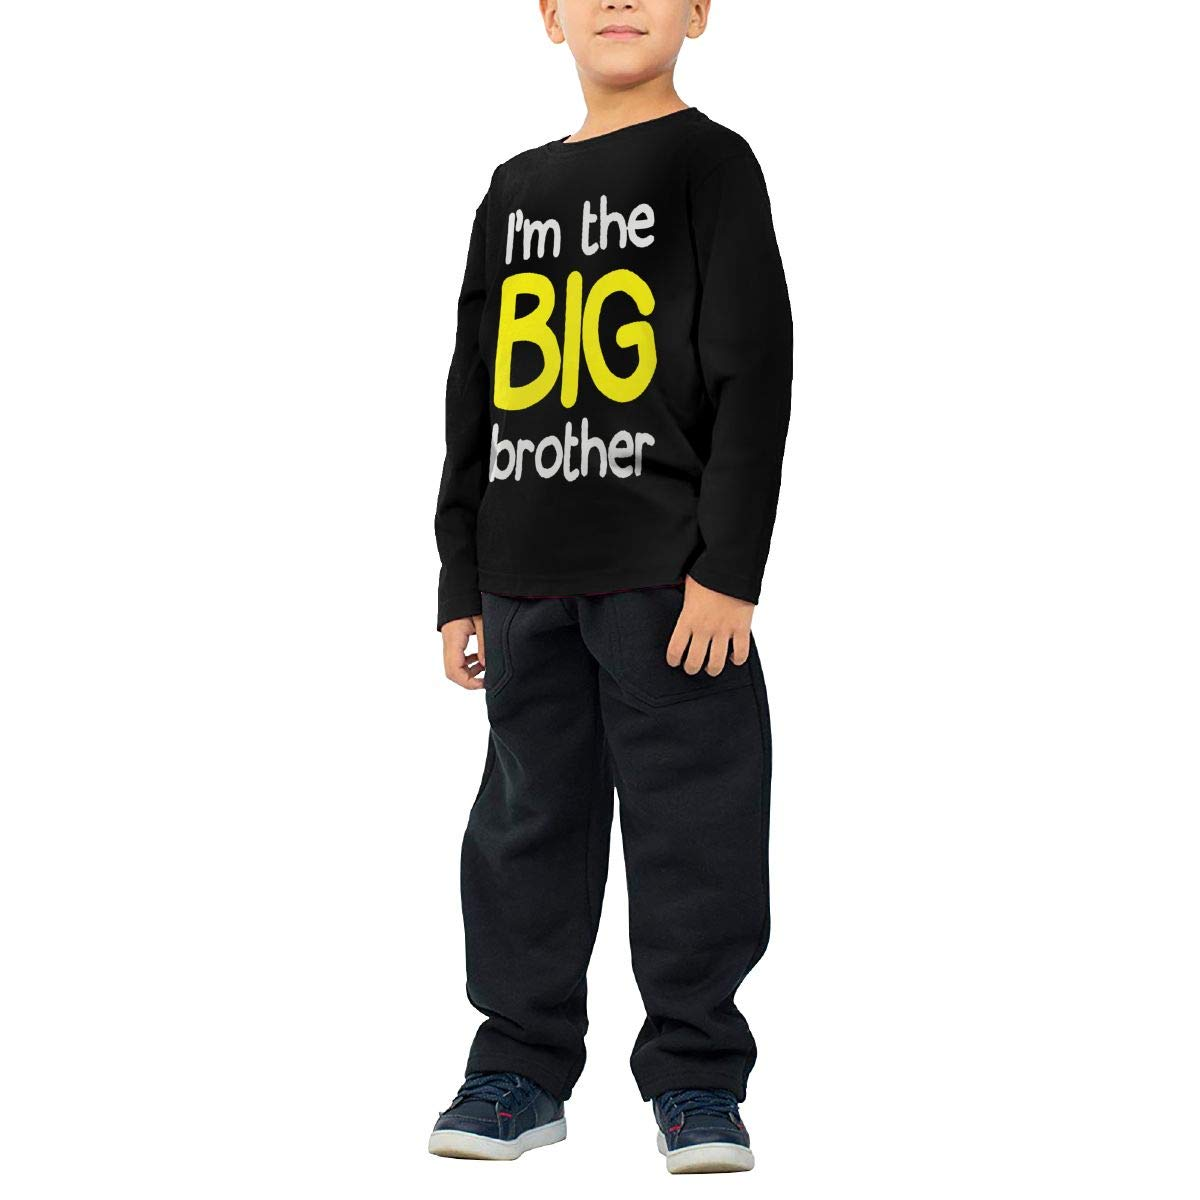 Im The Big Brother Childrens Cotton Black Long Sleeve Round Neck Boys Or Girls Tee Shirt